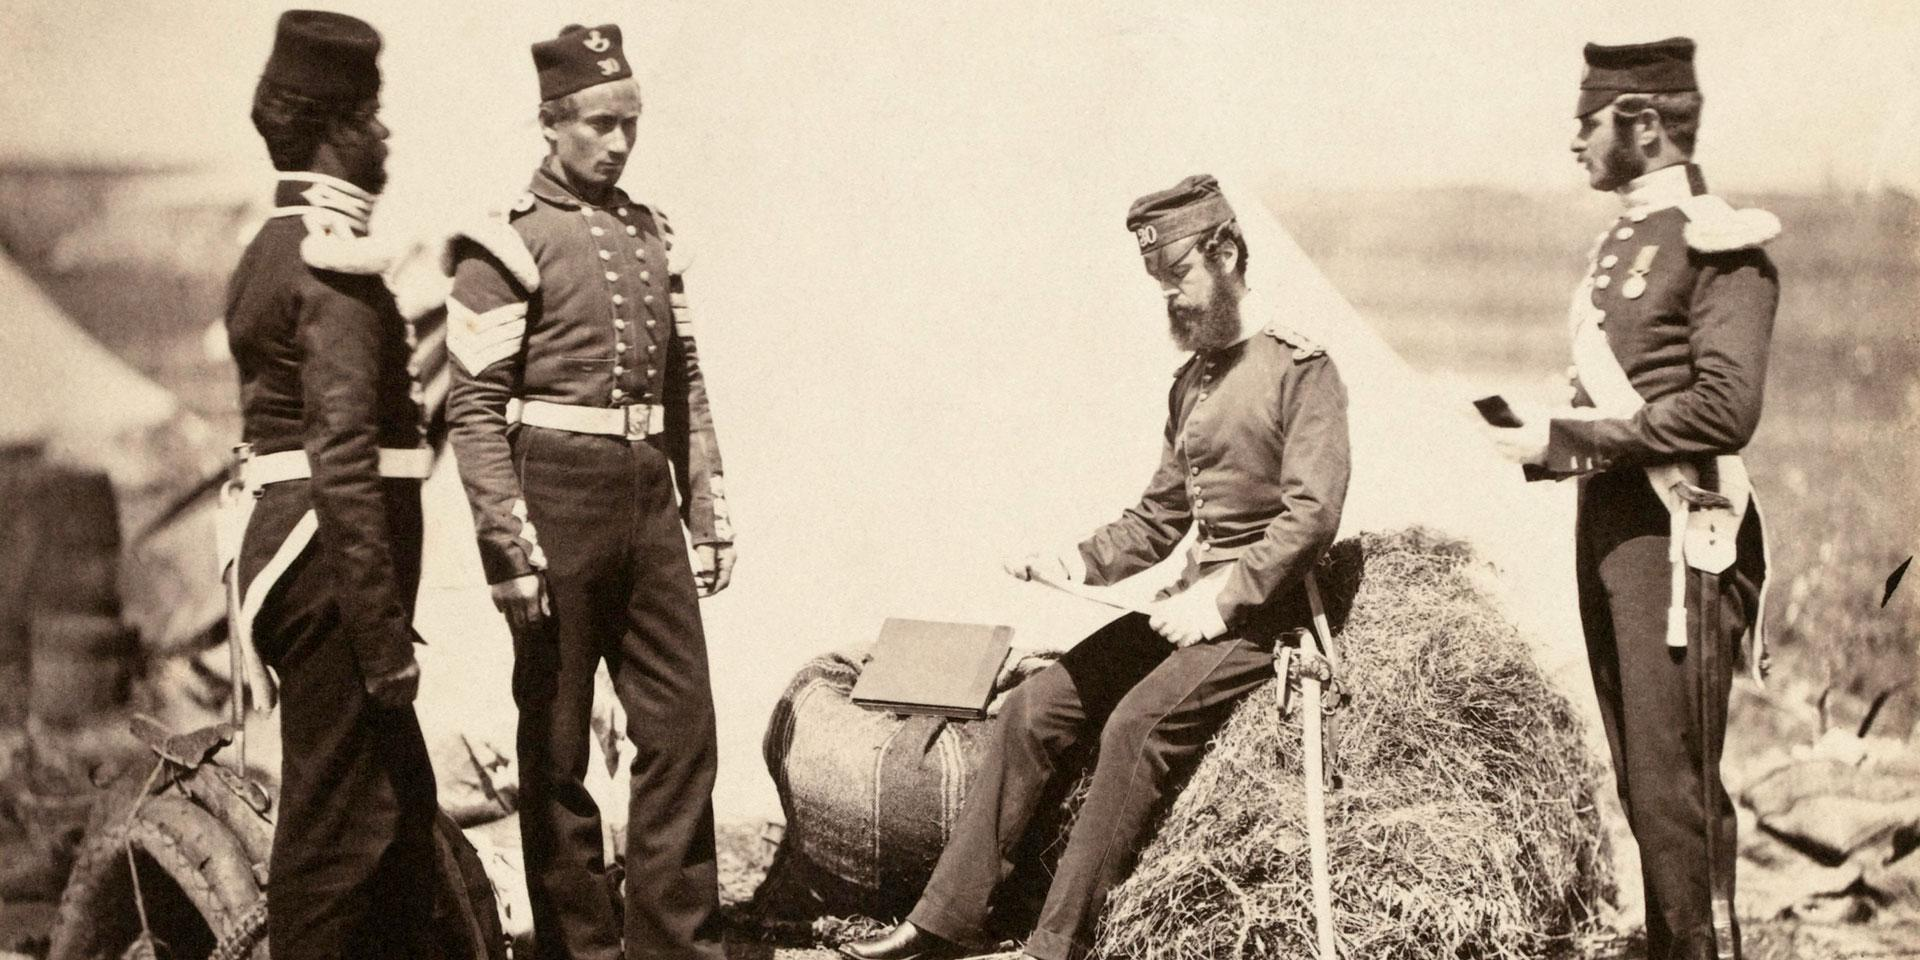 Captain Mark Walker VC (seated) with colleagues from the 30th (Cambridgeshire) Regiment in the Crimea, 1855